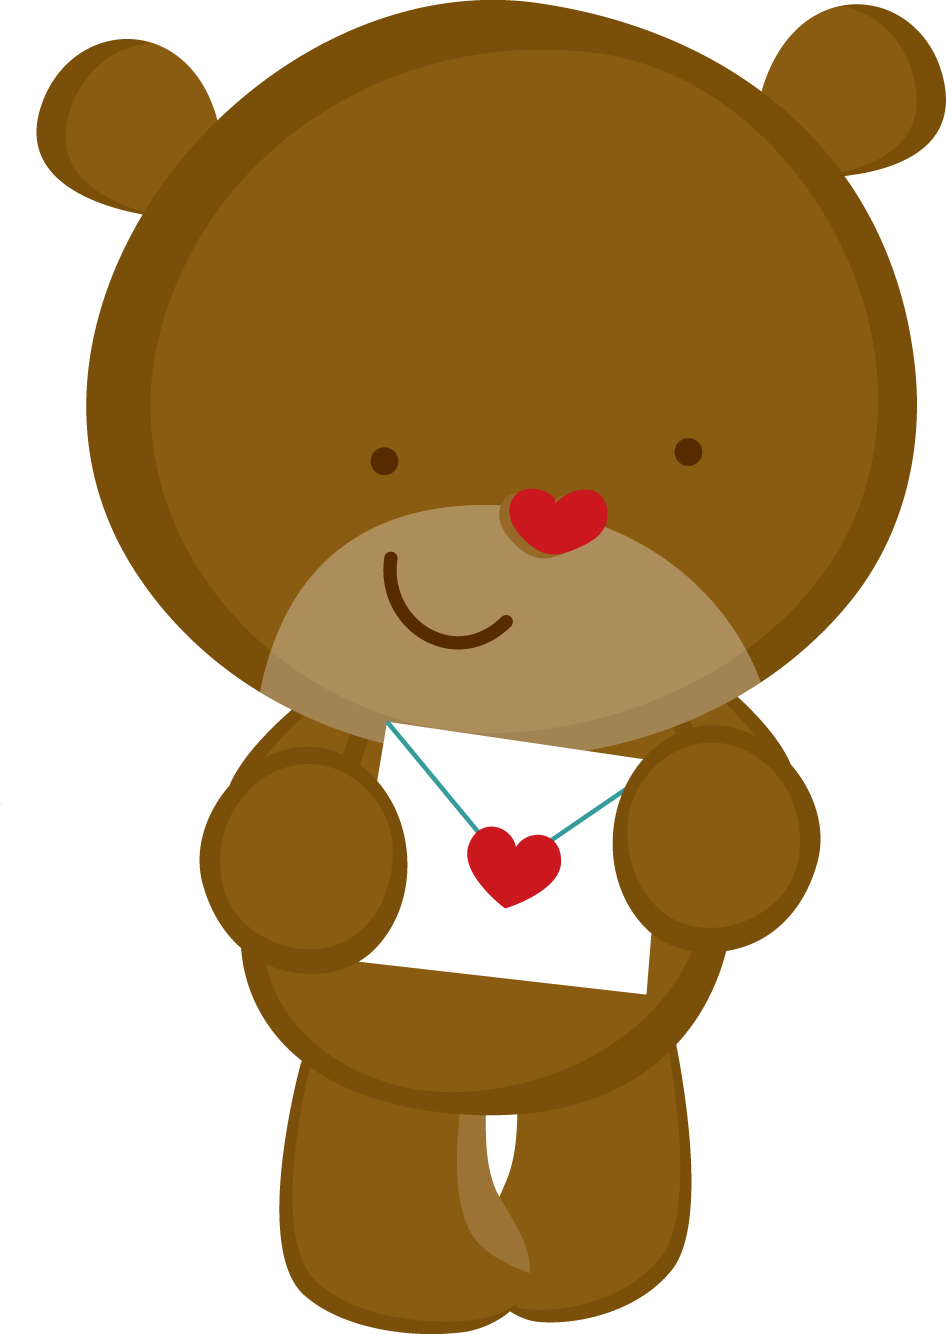 Teddy bears and turkey clipart clip art royalty free library ZWD_Valentine_word - ZWD_bear_2.png - Minus | clipart | Pinterest ... clip art royalty free library